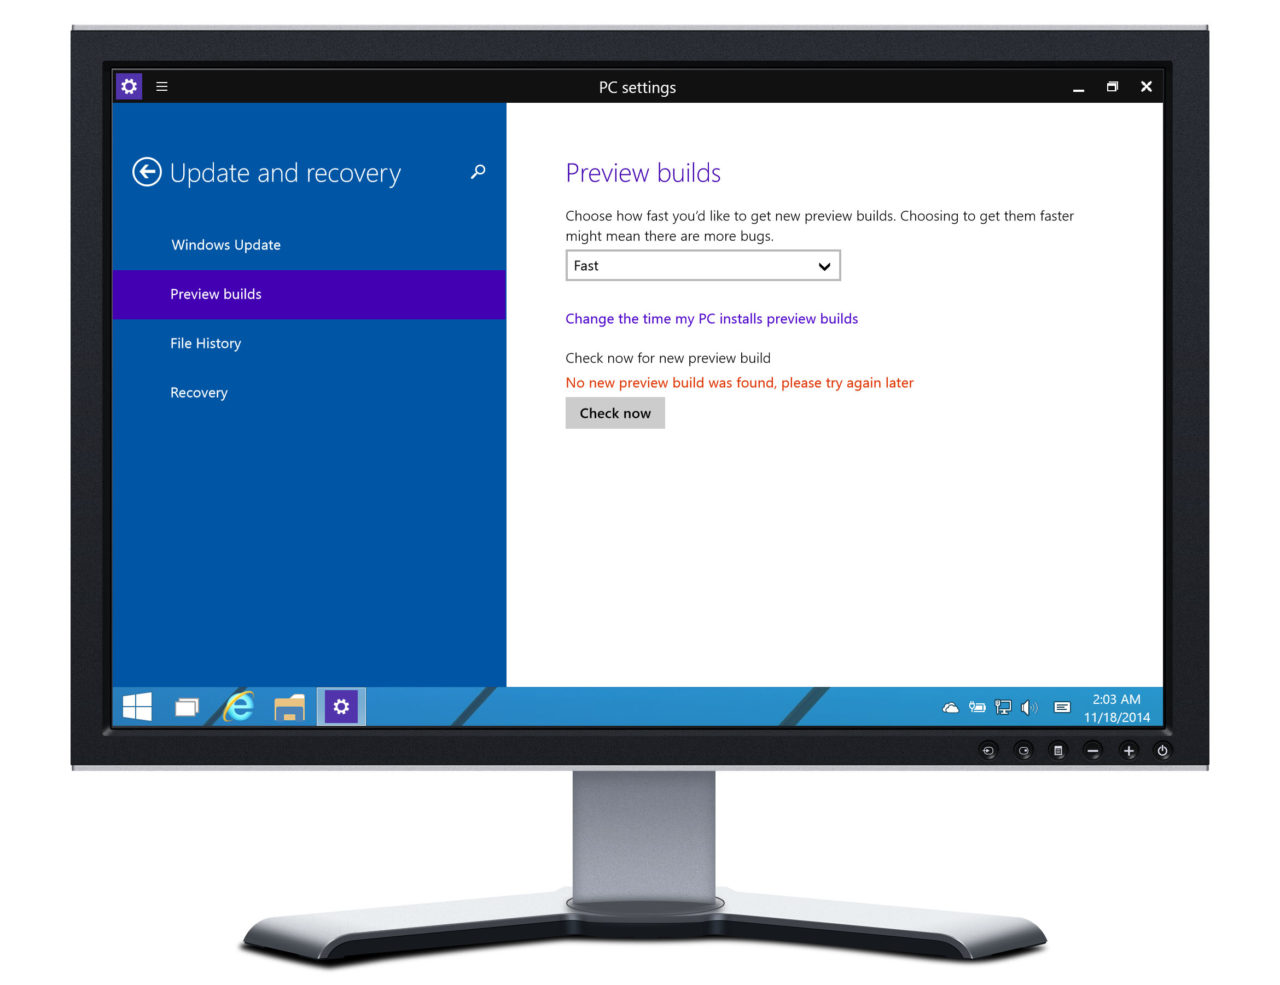 How to Stay Up to Date and Get the Latest Windows 10